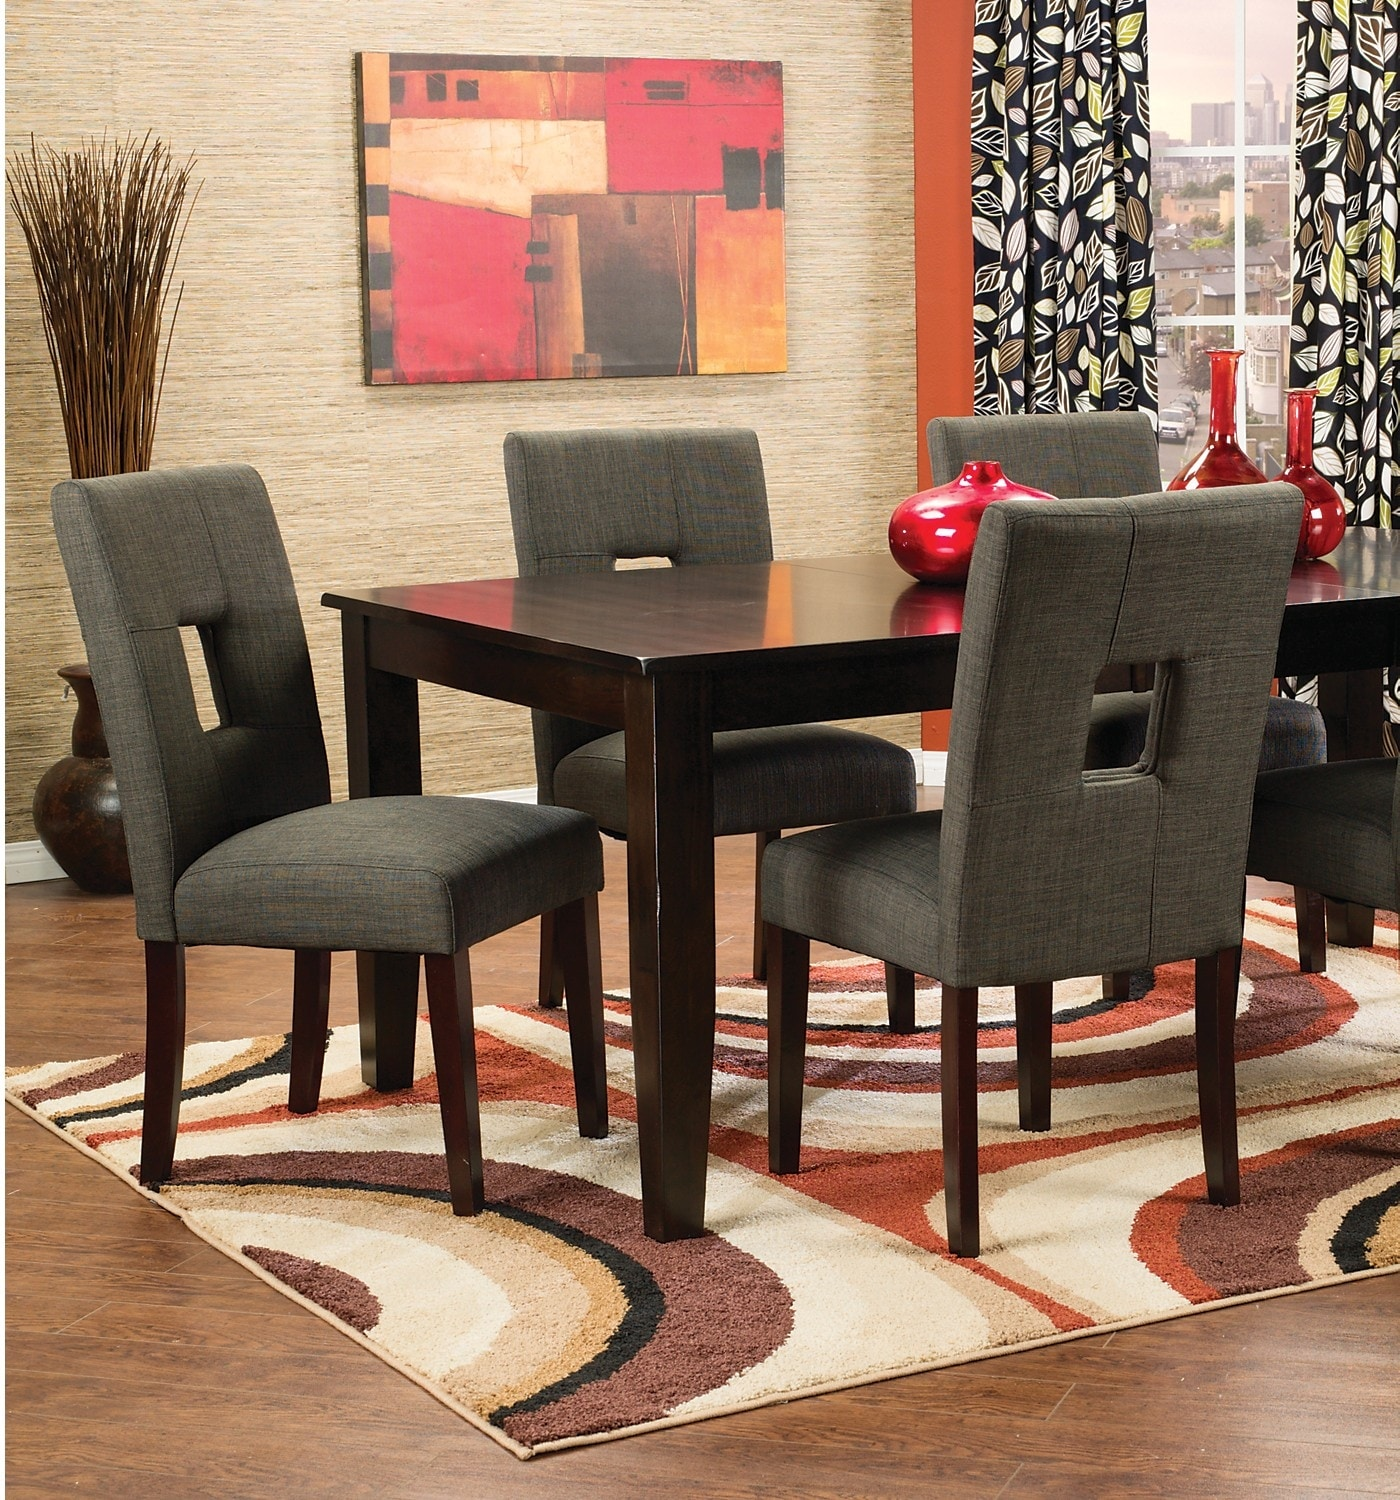 Dakota 5-Piece Dining Package with Grey Chairs